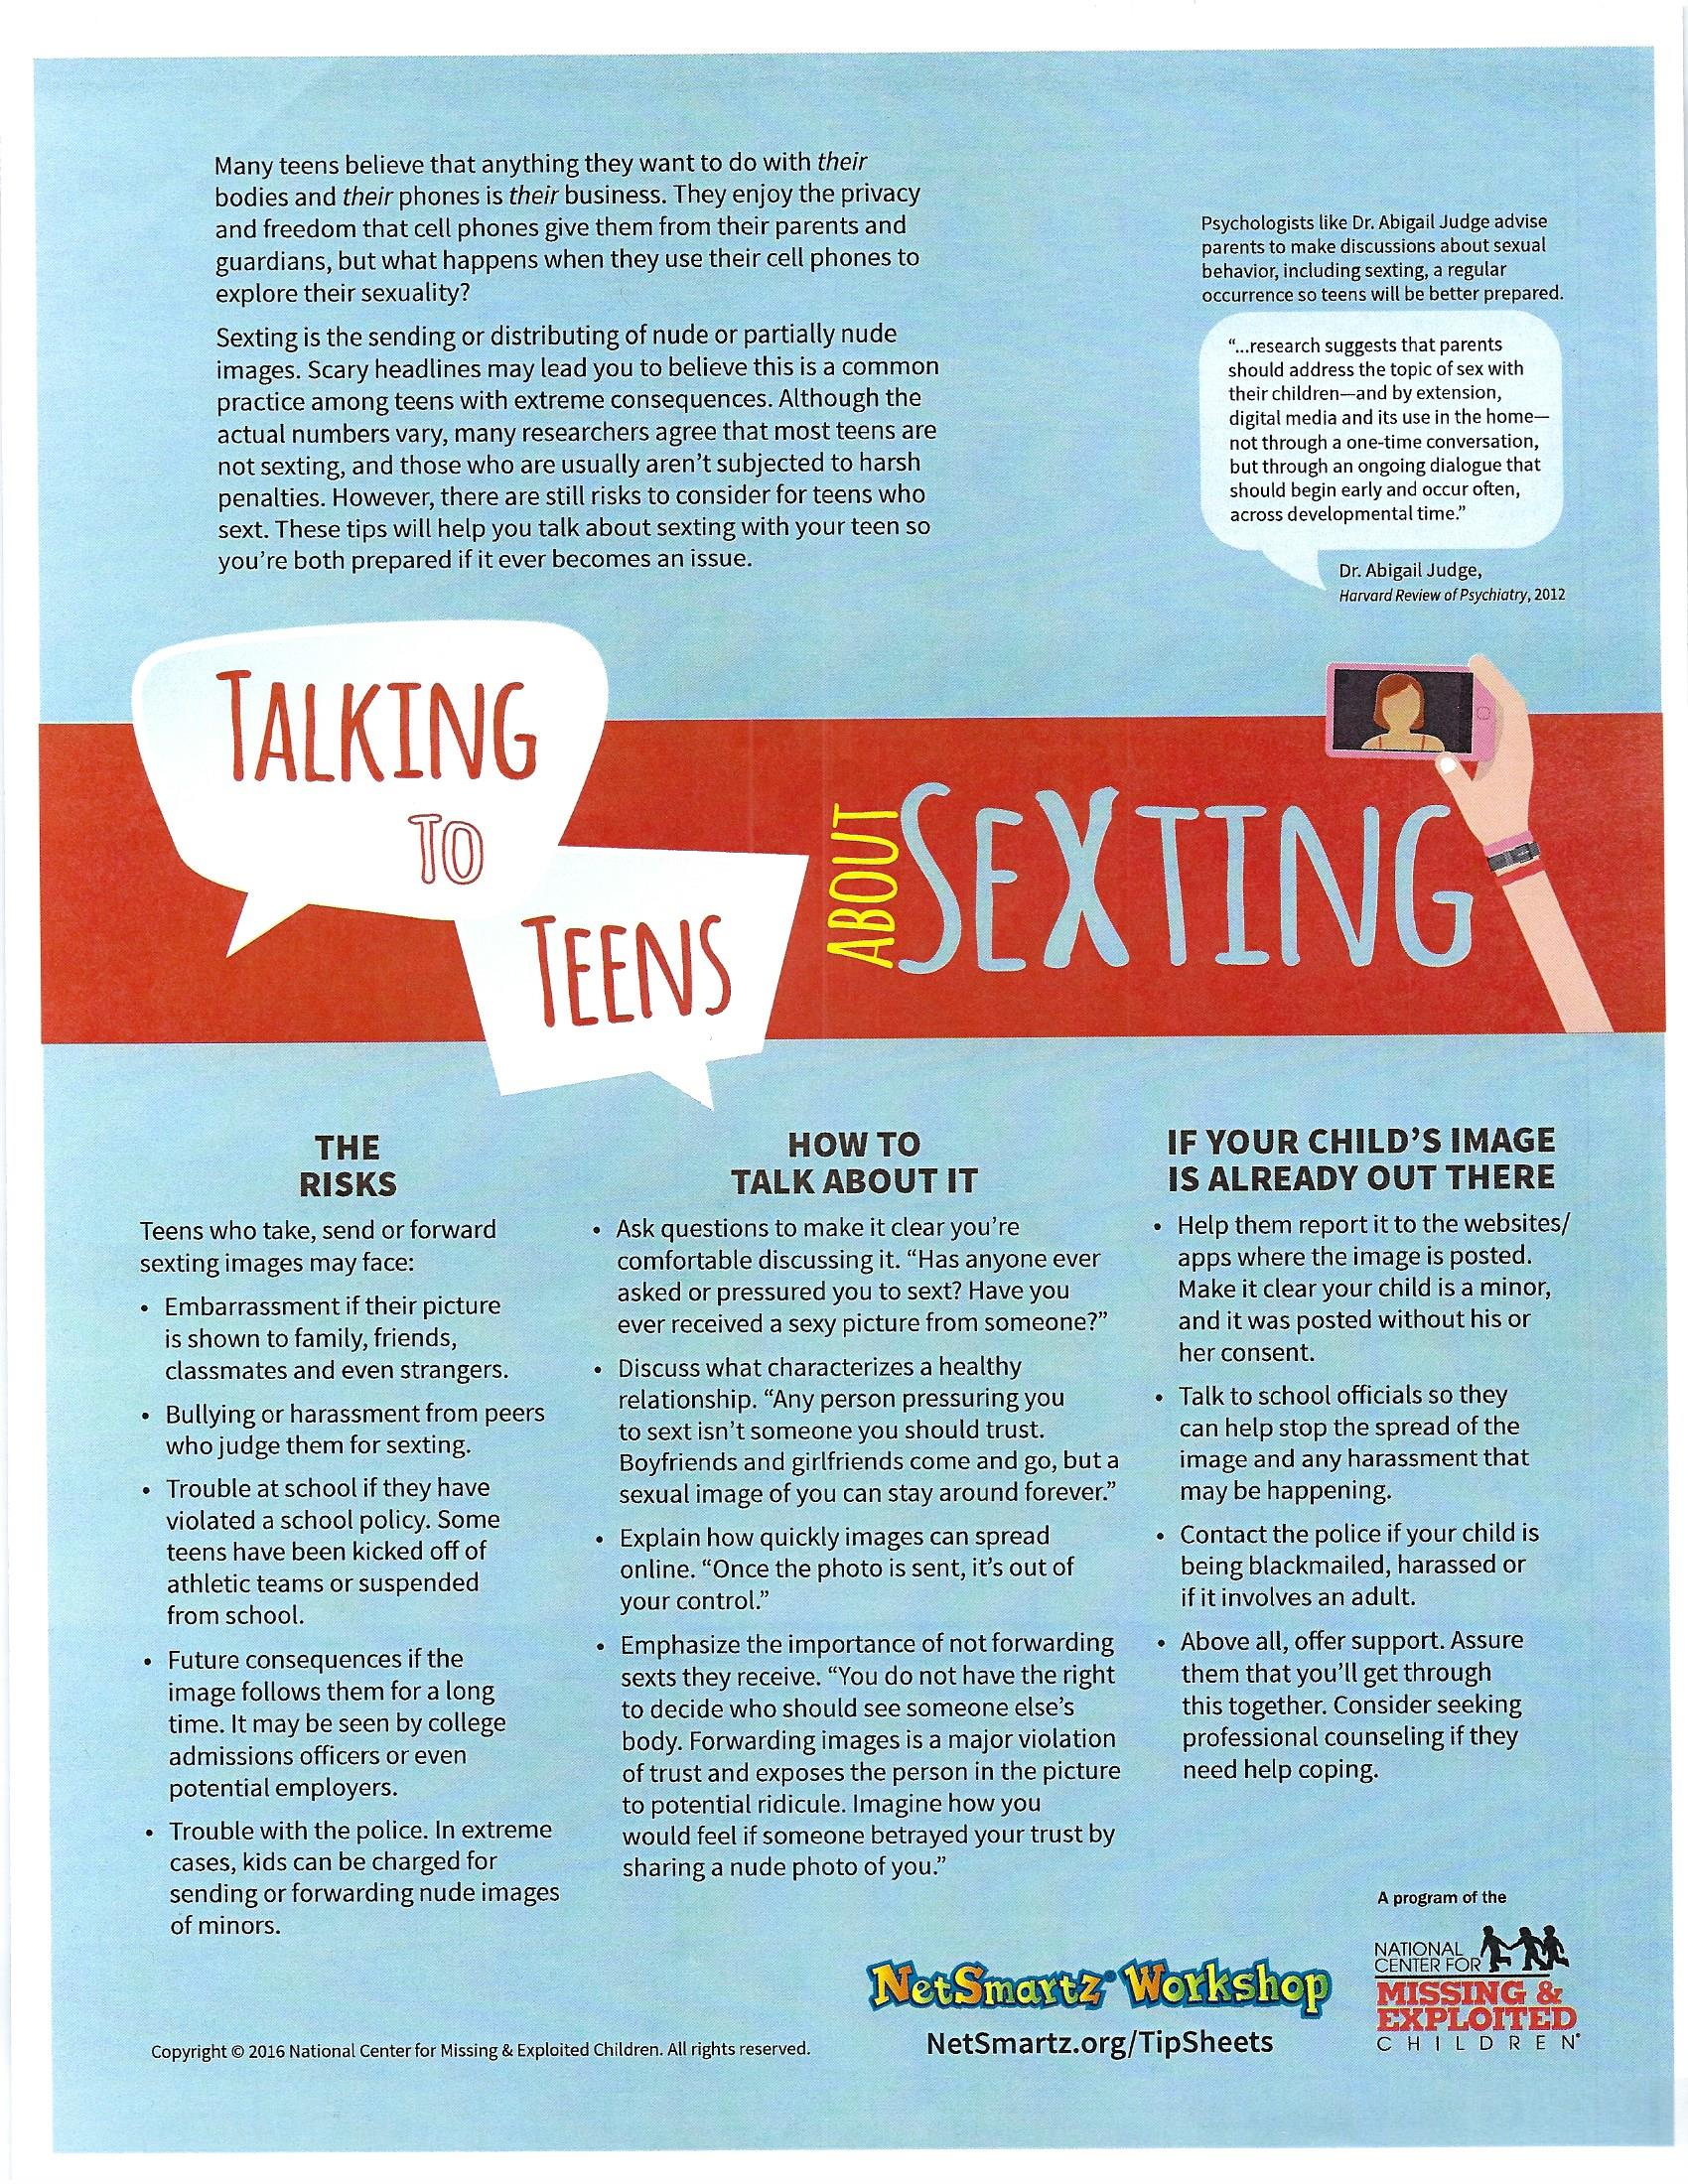 Talking to Teens about Texting